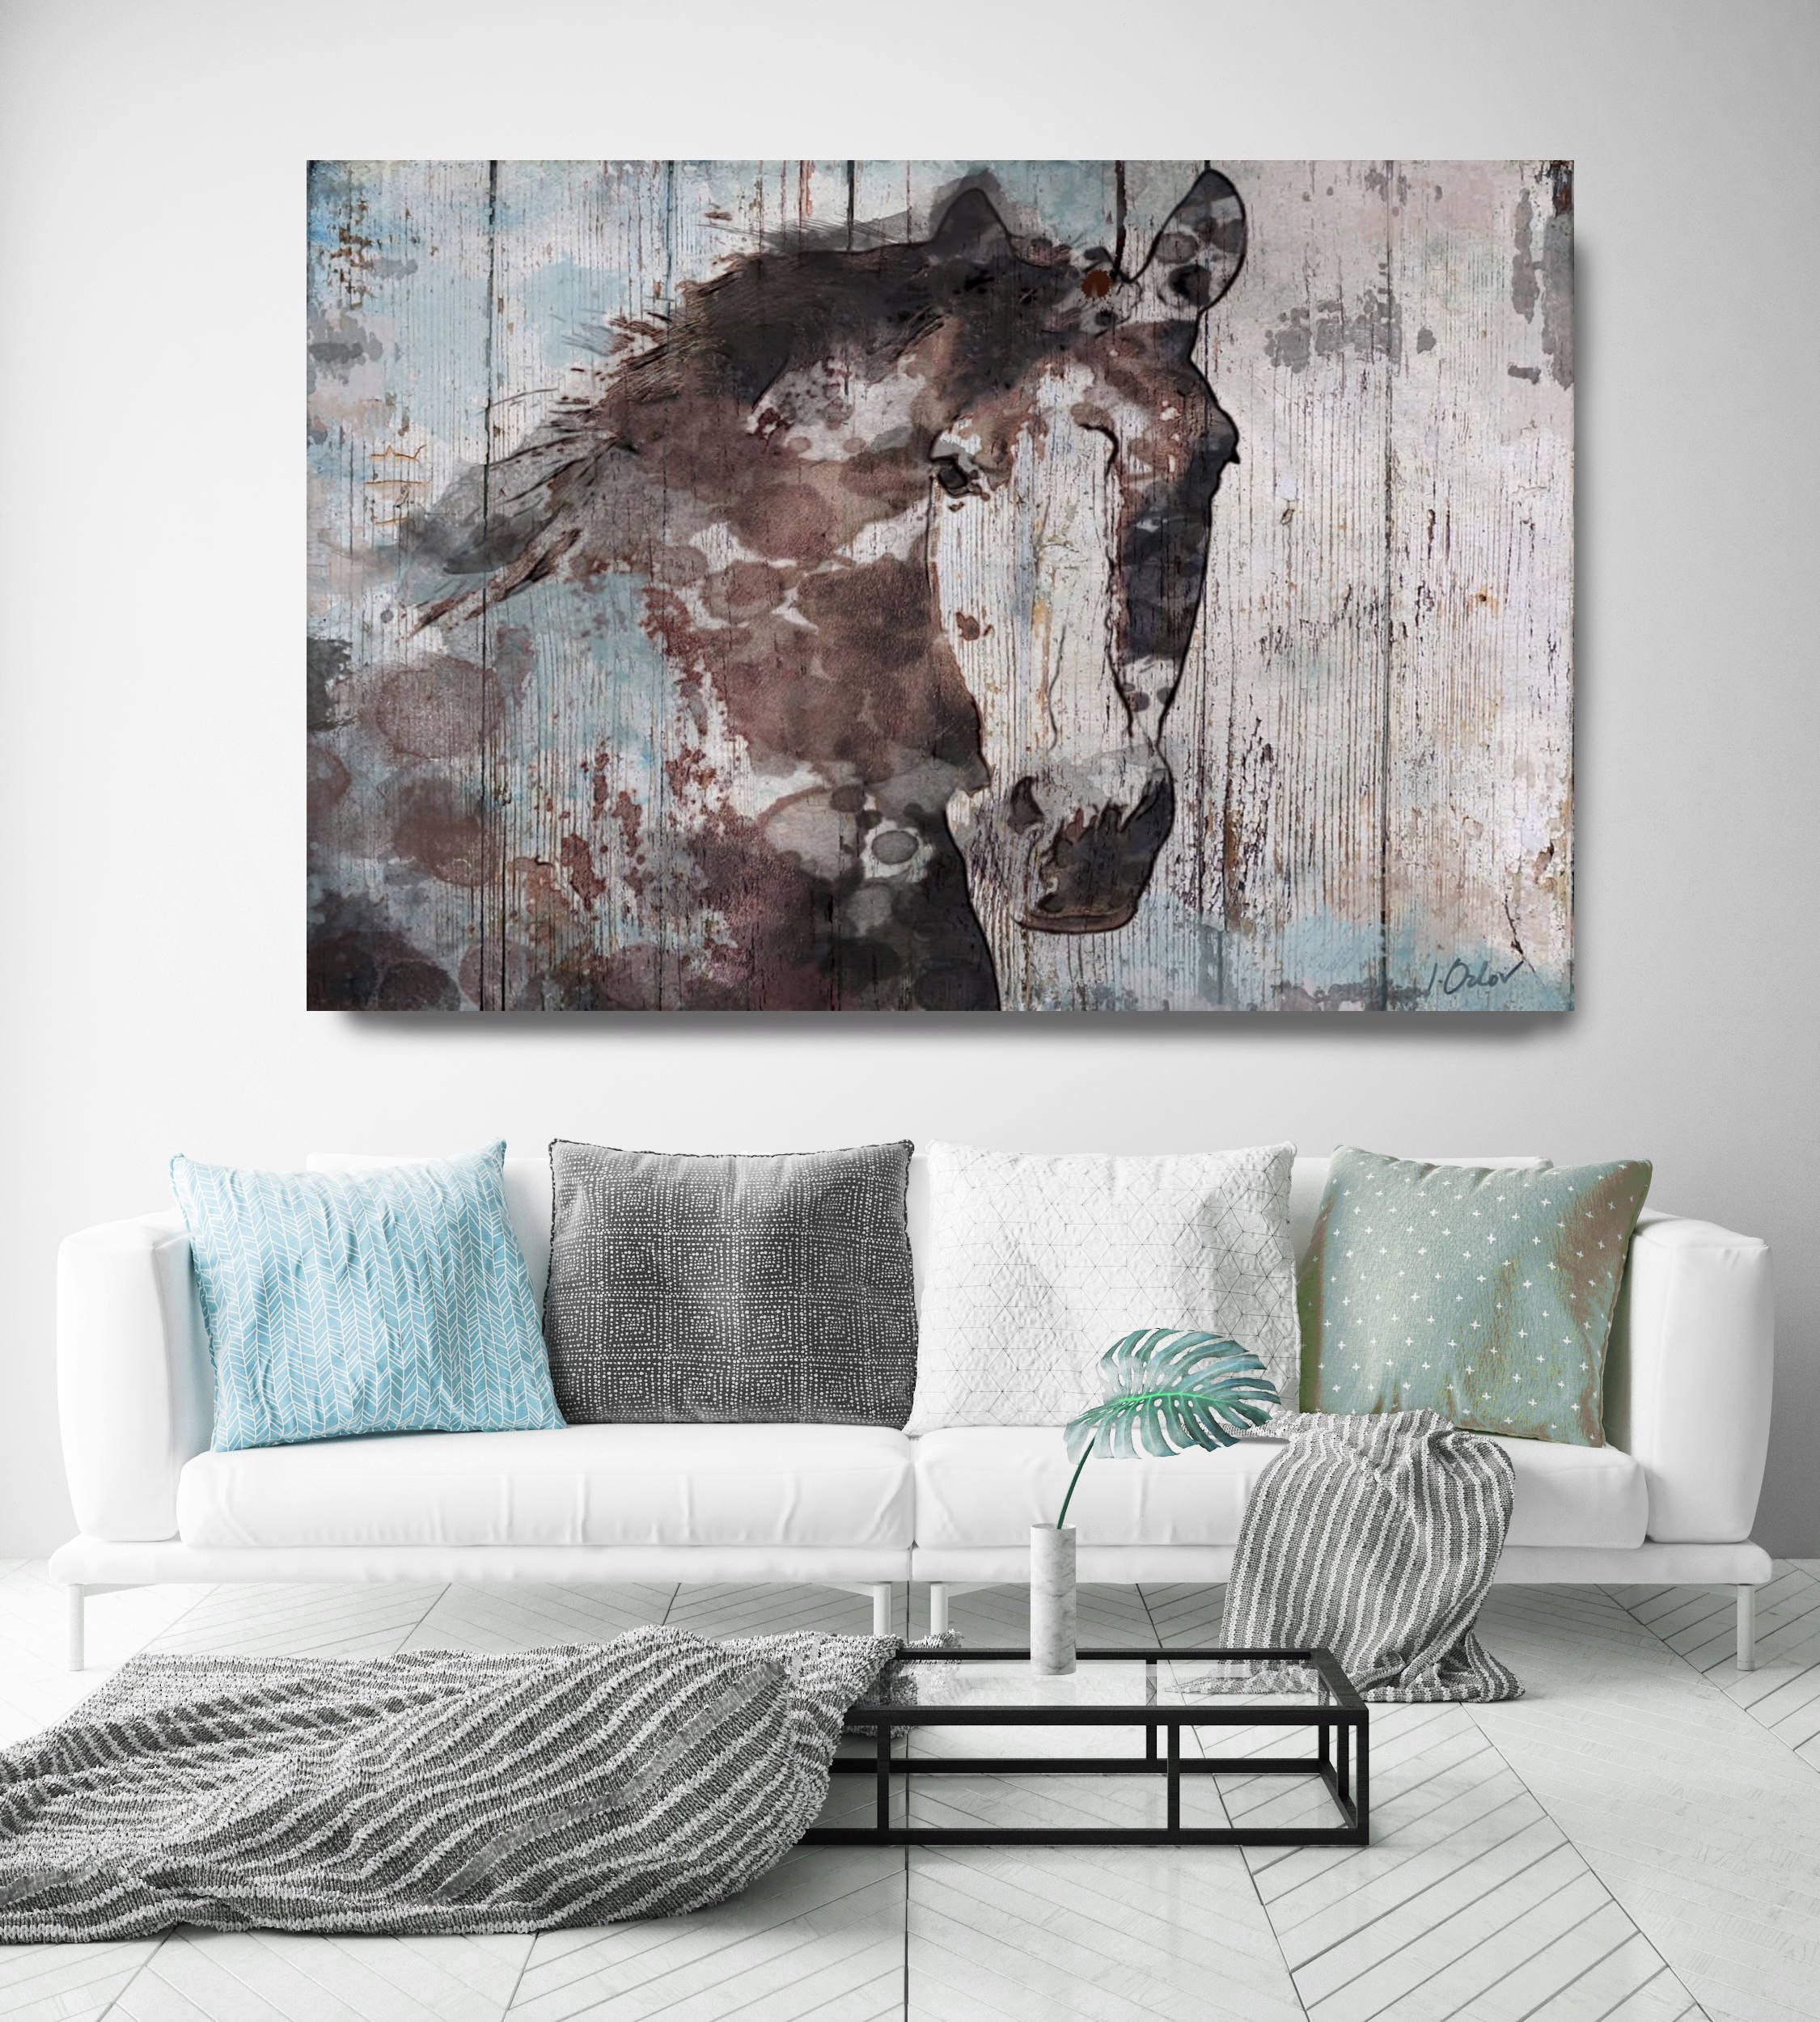 Wild Blue Horse Extra Large Horse Wall Decor Brown Rustic Etsy In 2020 Horses Wall Decor Wall Art Decor Living Room Wall Art Living Room #rustic #paintings #for #living #room